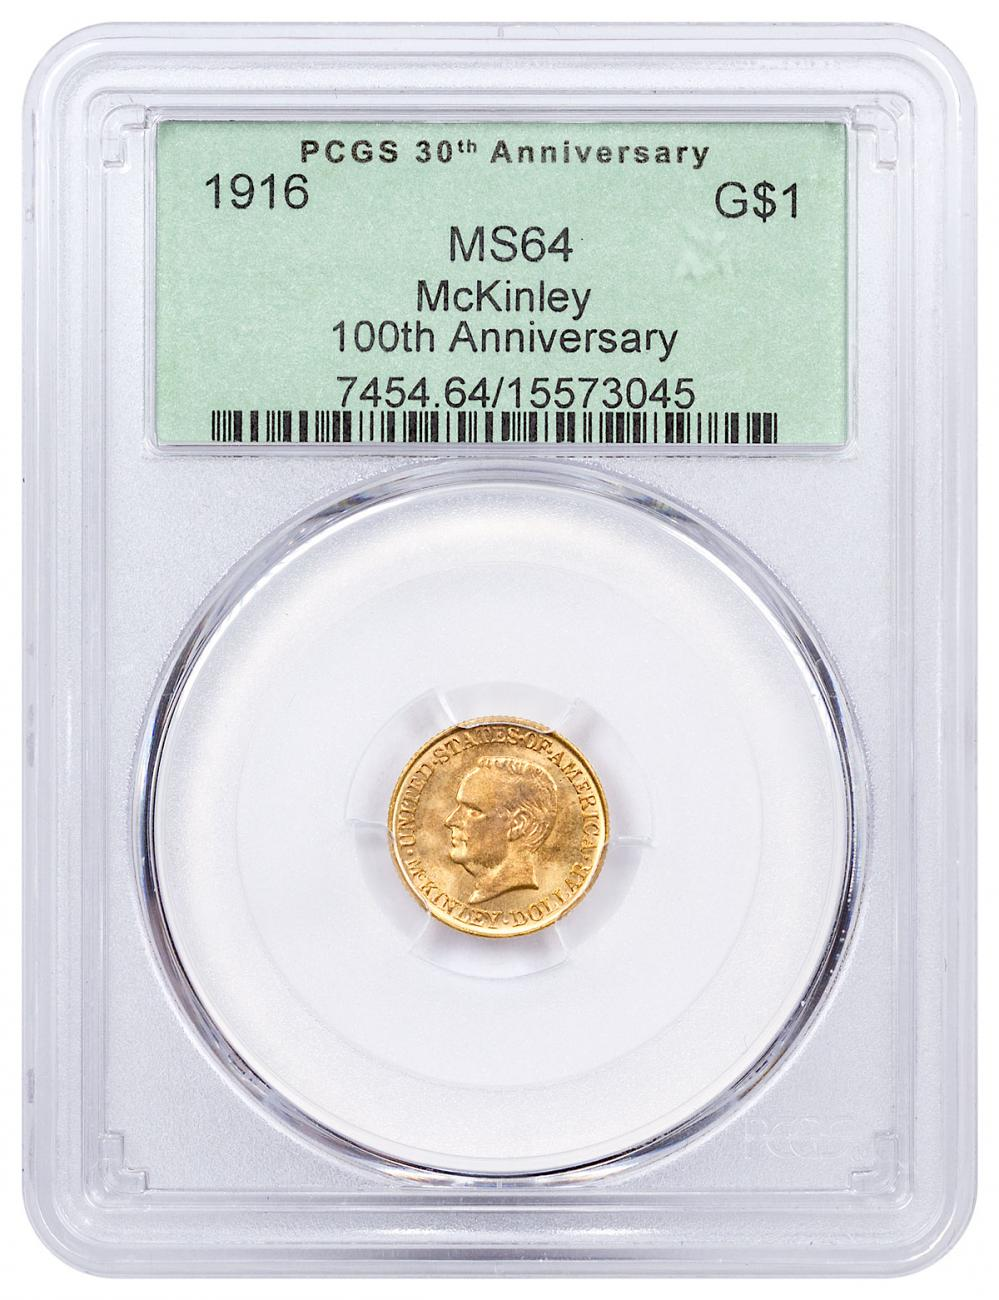 1916 McKinley Dollar $1 Gold Commemorative Coin PCGS MS64 100th Anniversary Green Label